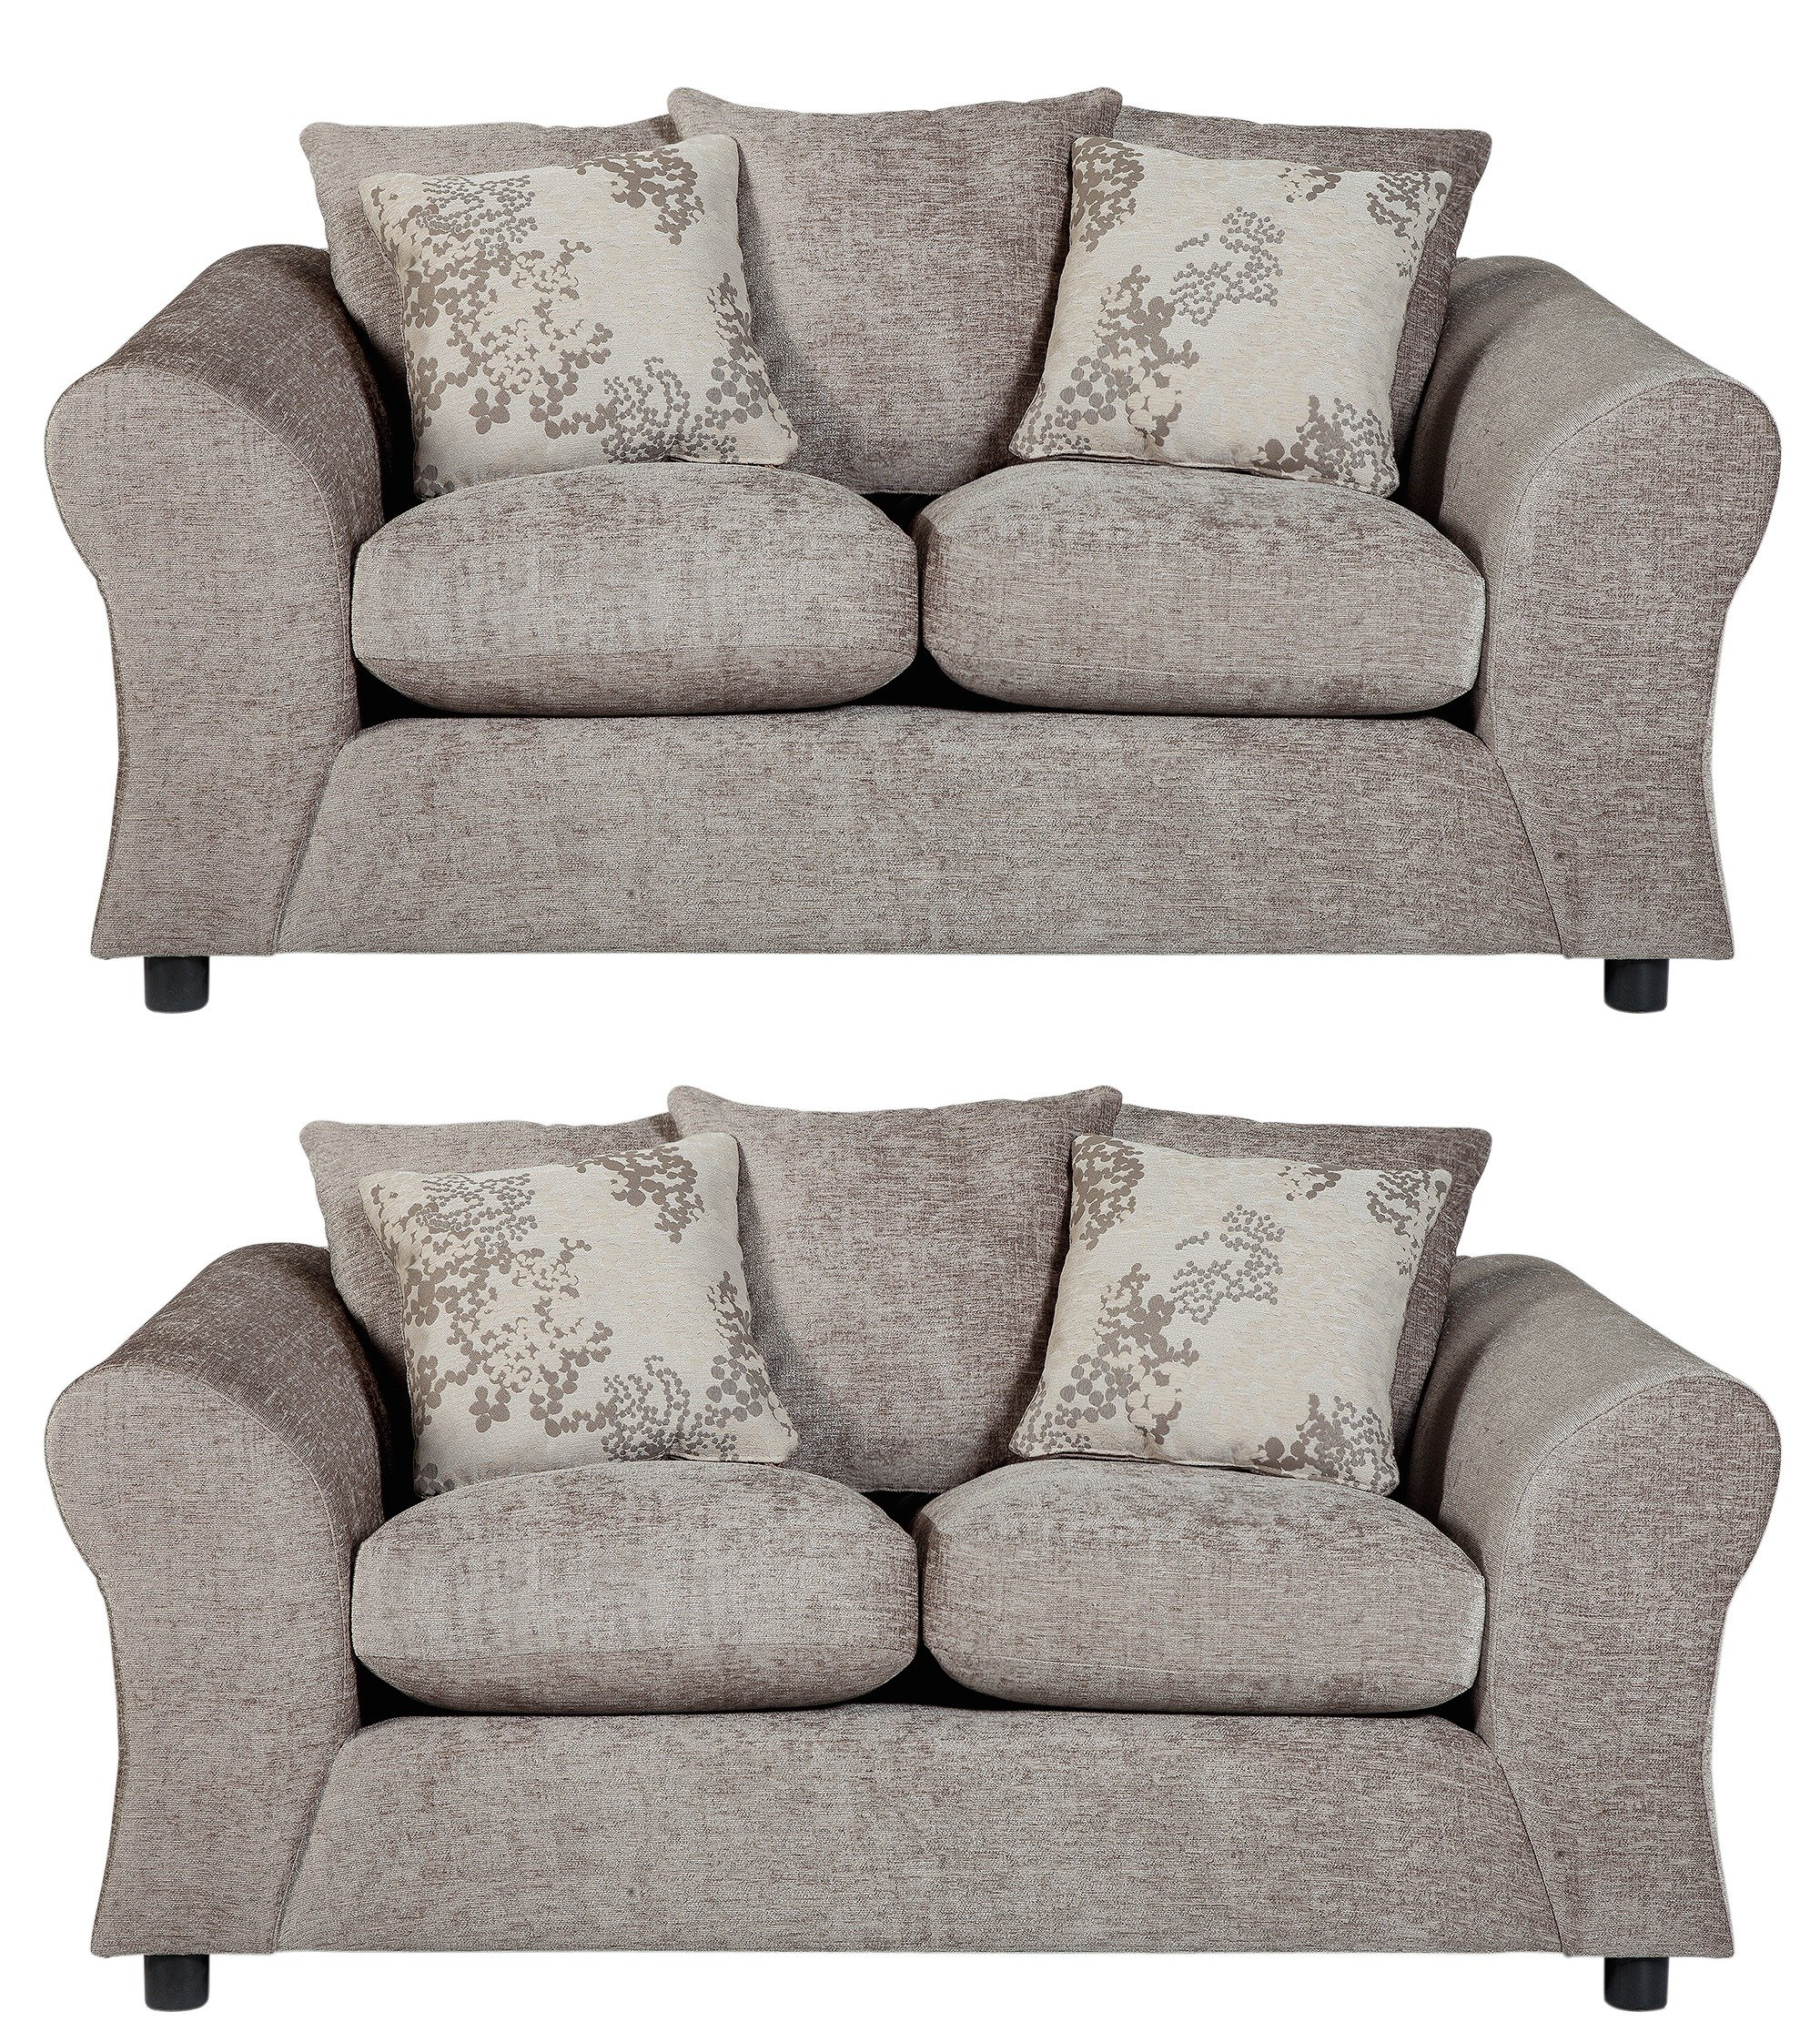 Argos Home - Clara Regular and Regular Fabric - Sofa - Mink